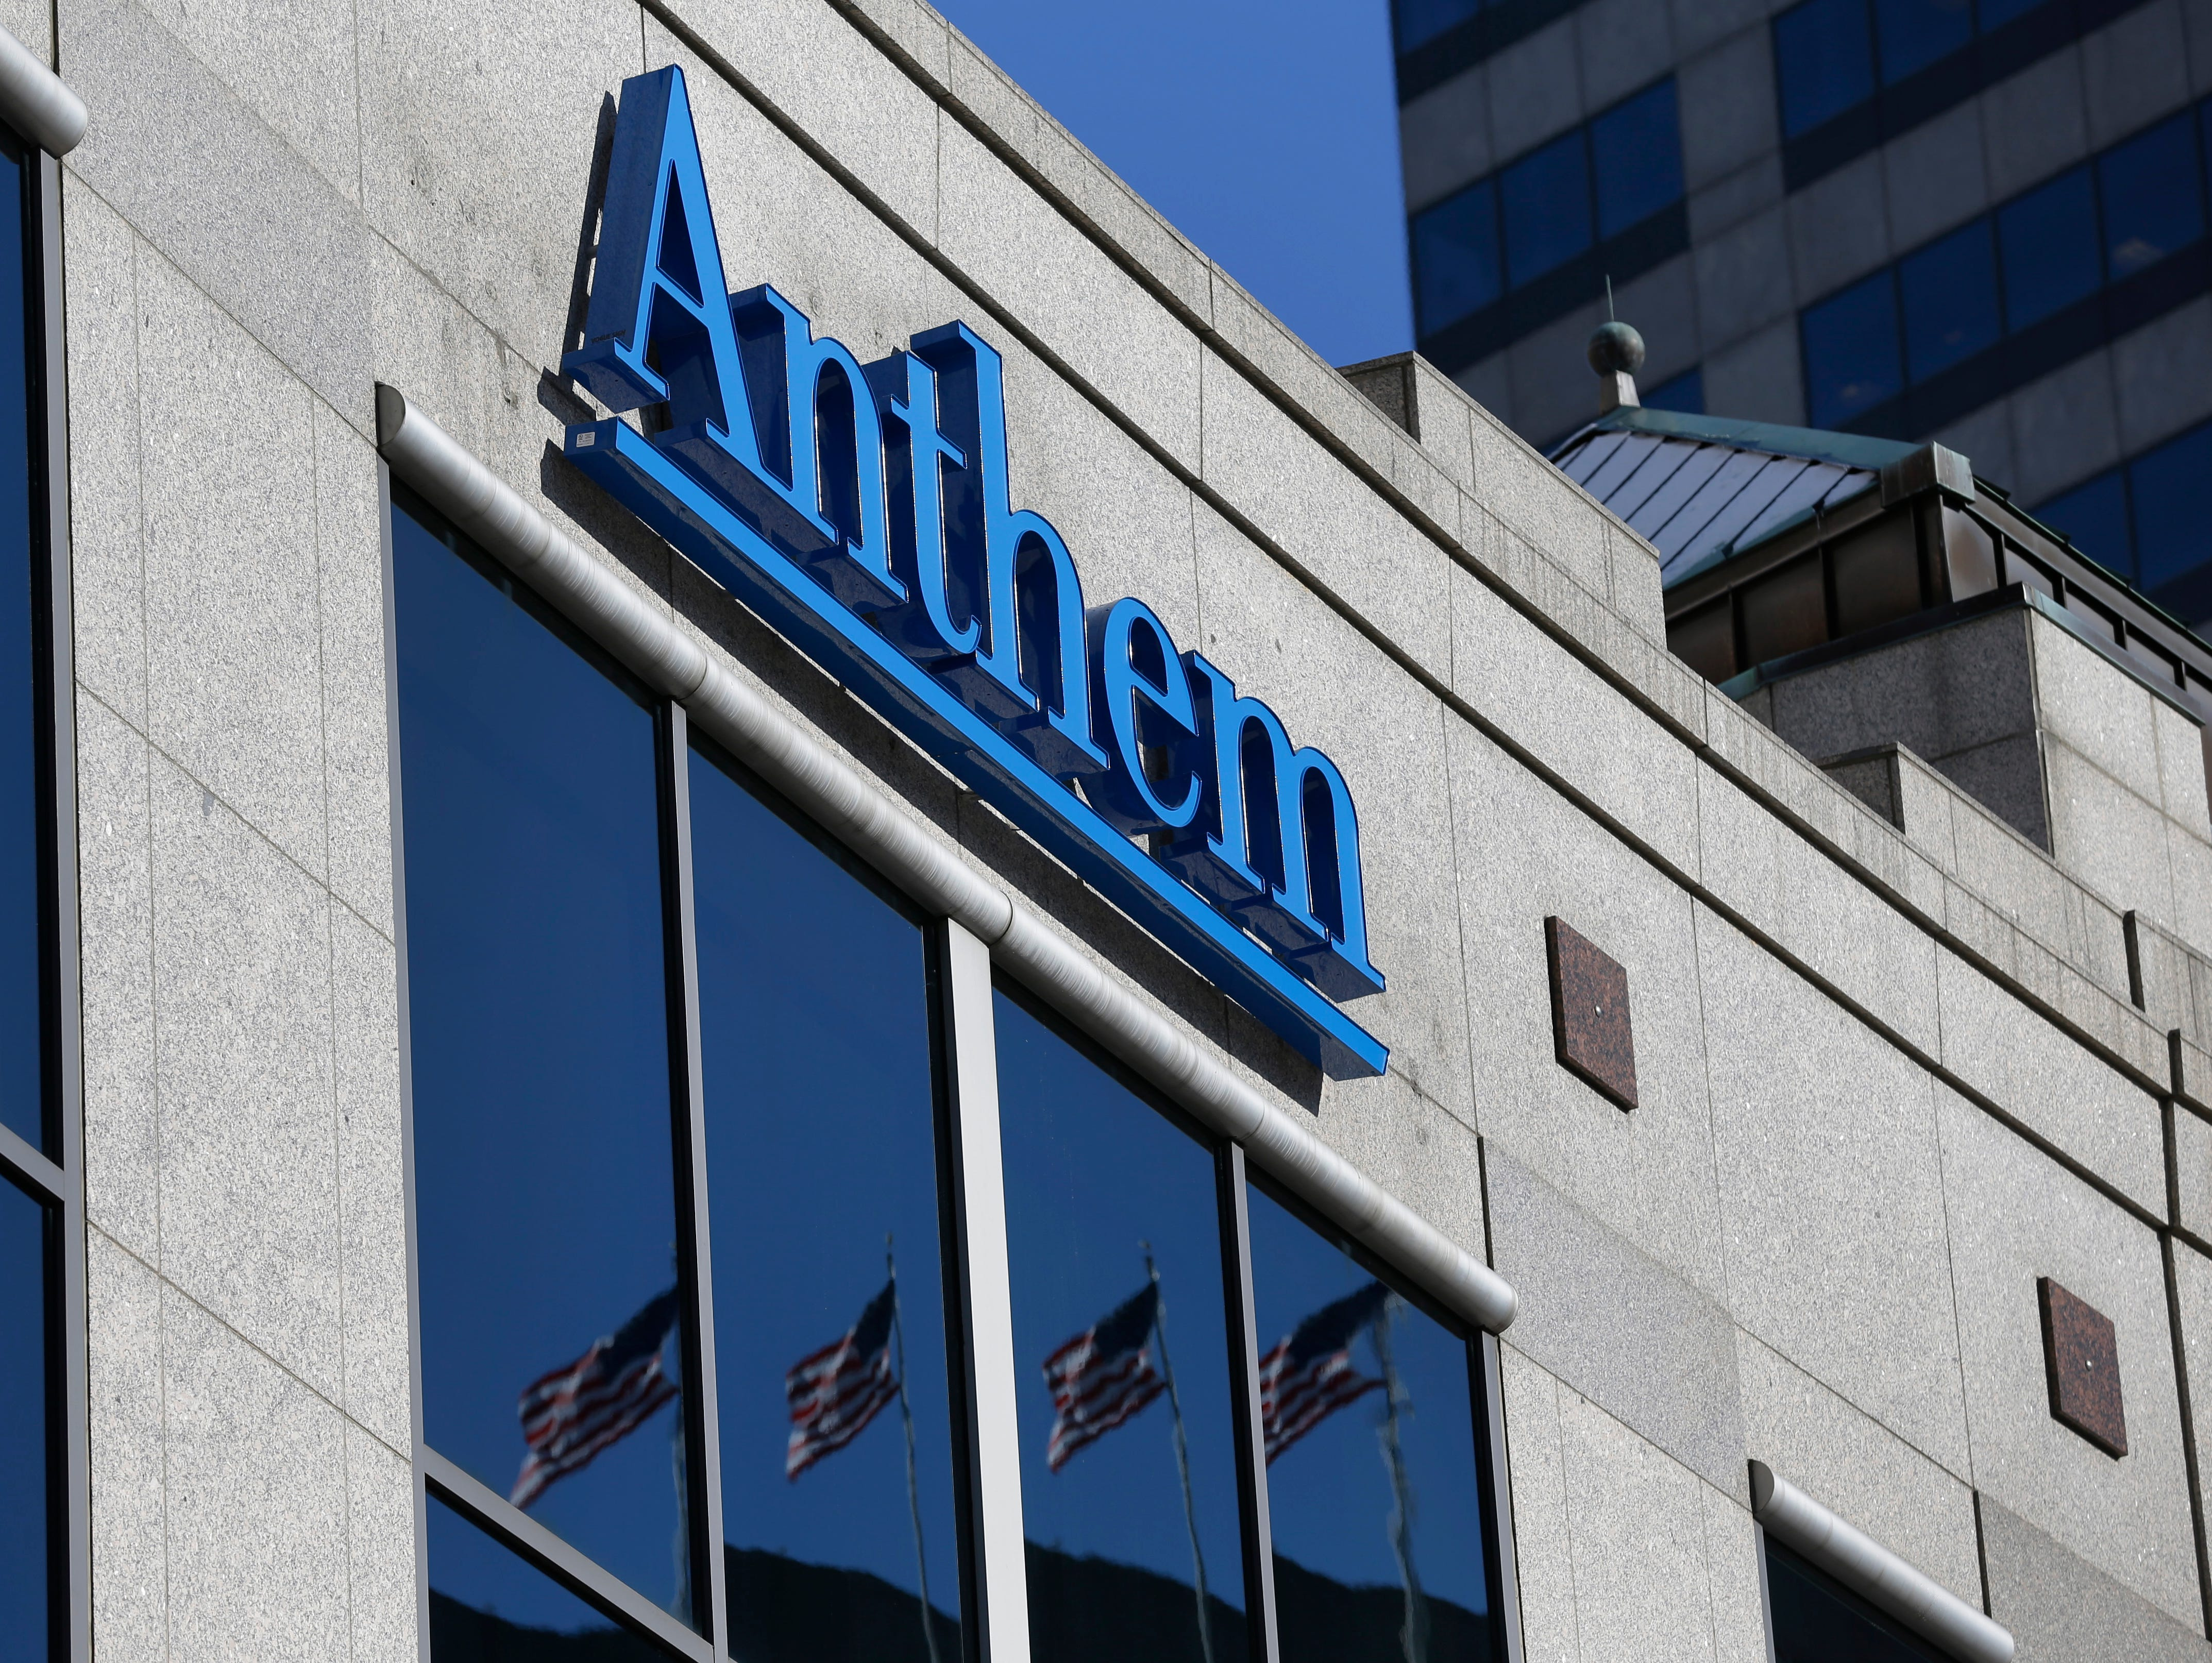 The Anthem logo hangs at the health insurer's corporate headquarters in Indianapolis Thursday, Feb. 5, 2015. Hackers broke into the company's database storing information for about 80 million people in an attack bound to stoke fears many Americans ha